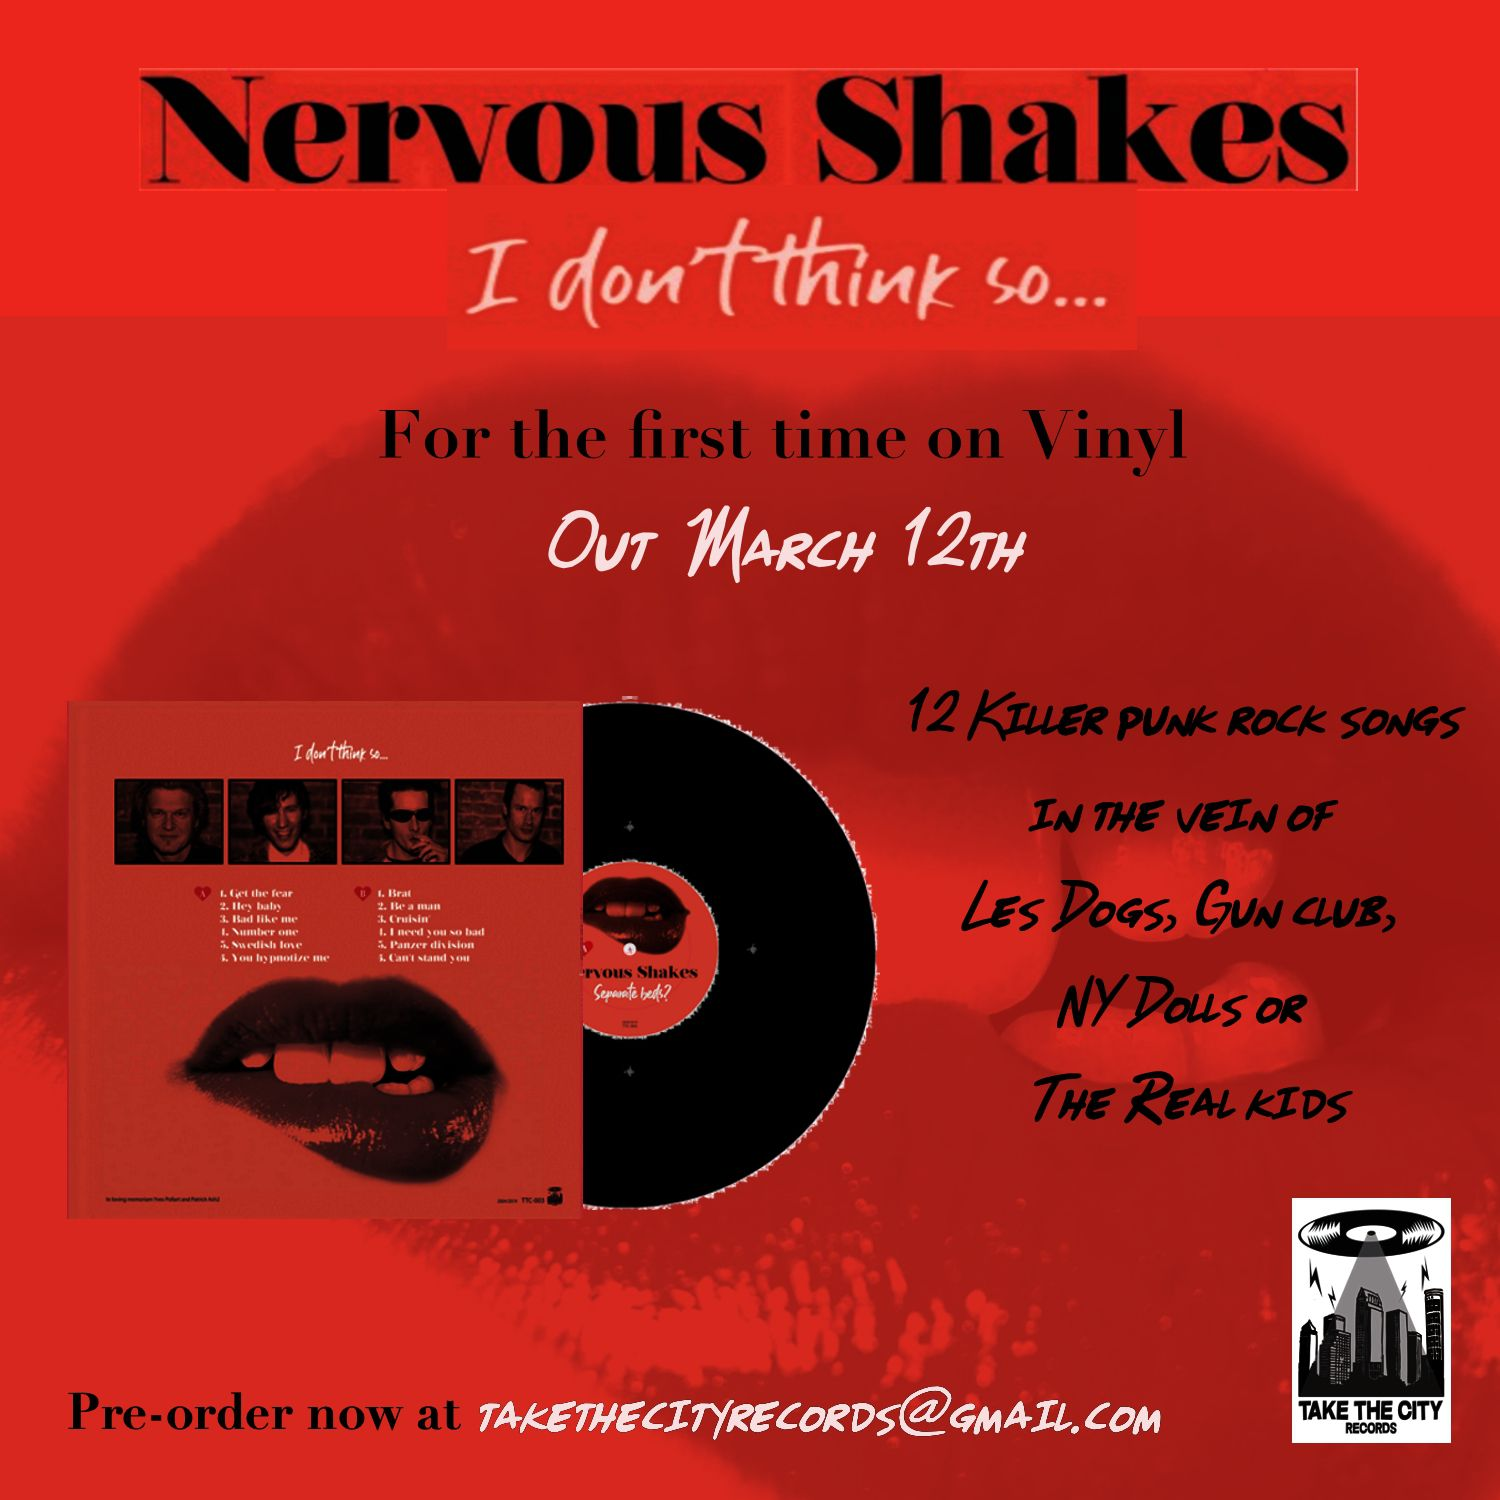 🎵 Vinyl reissue of NERVOUS SHAKES debut album